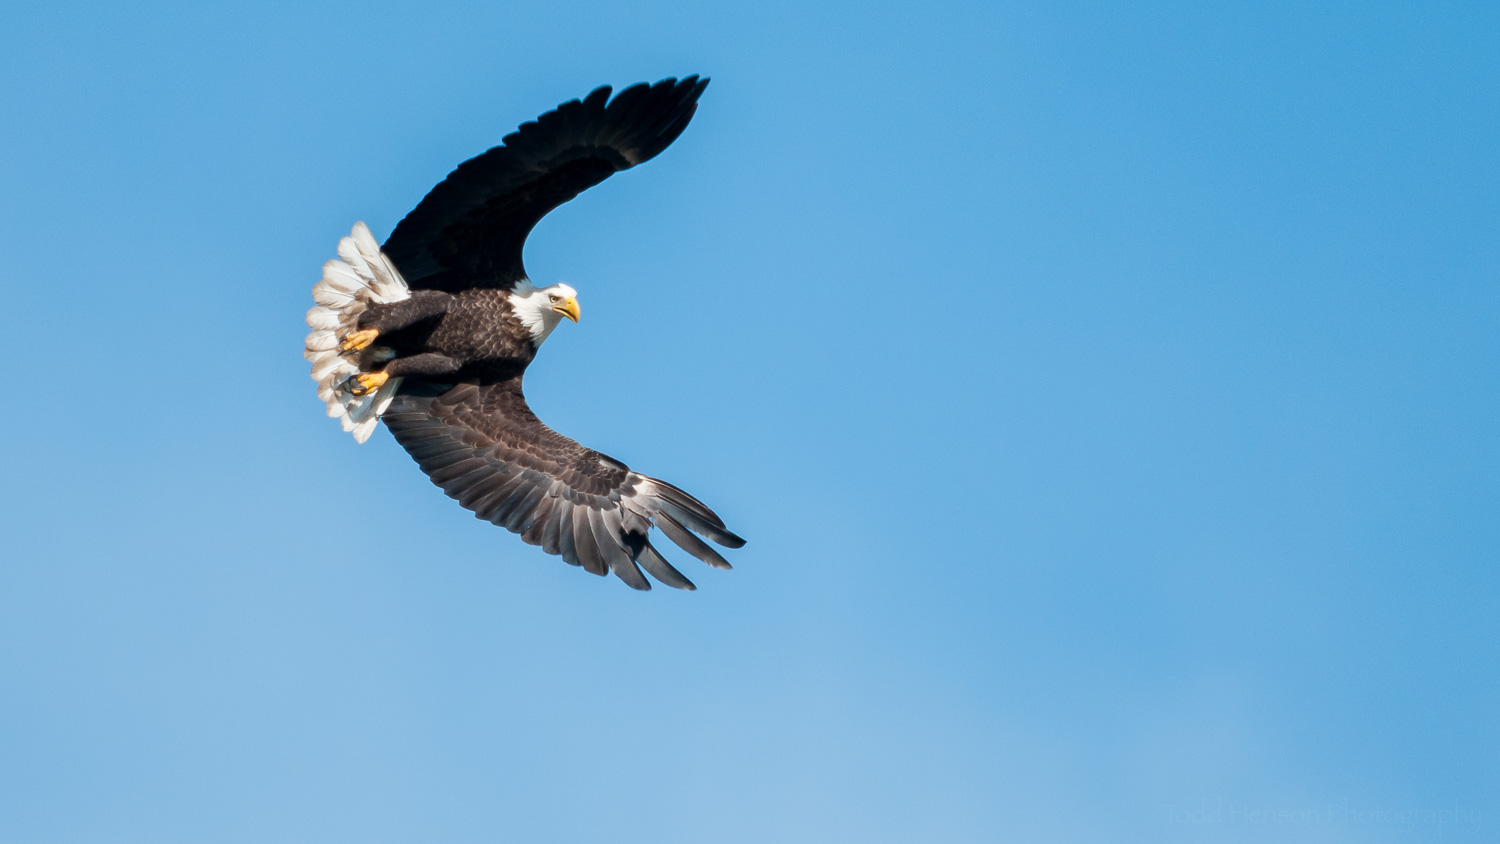 Bald Eagle  at an interesting angle as it scans the river below